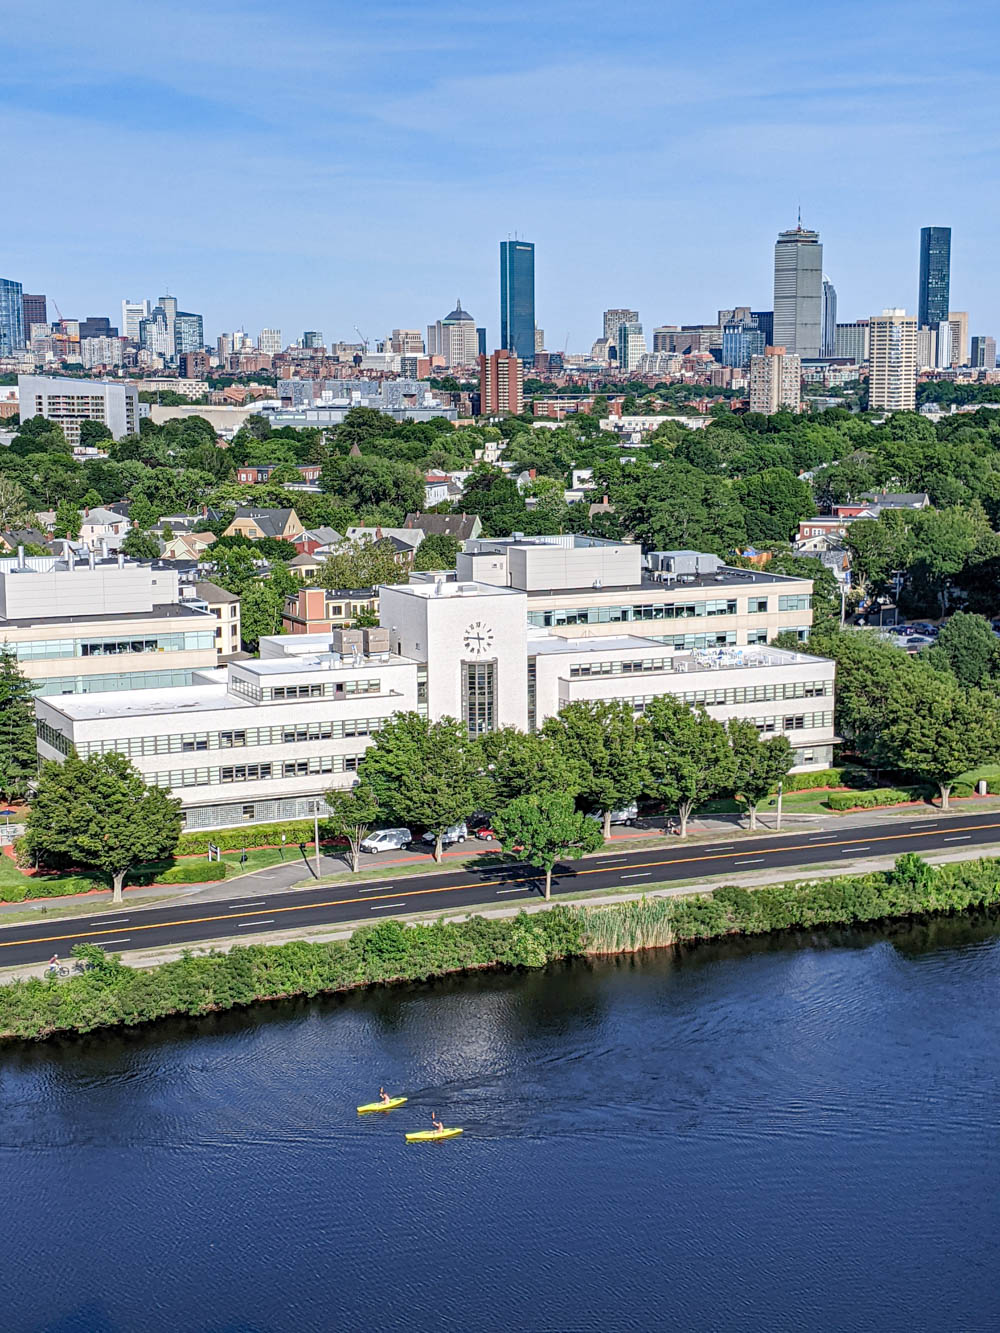 Boston bucket list and the best things to do in Boston: kayakers on the charles river